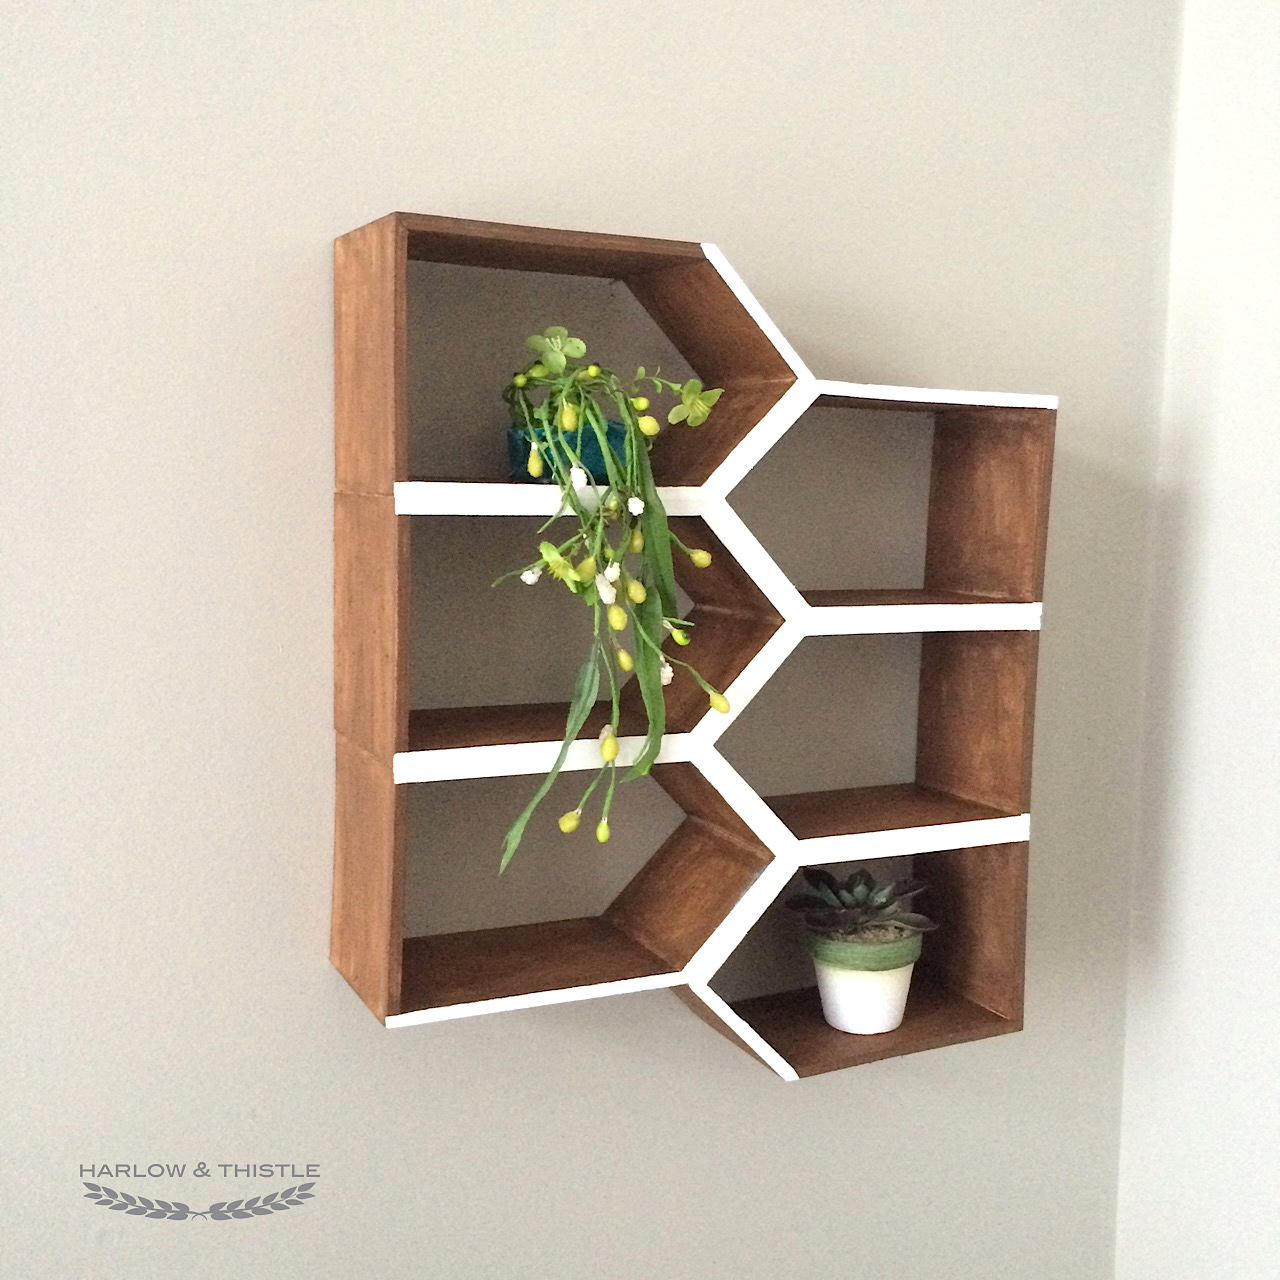 Diy geometric wall shelf harlow thistle home design diy geometric wall shelf minwax ids17 harlow thistle 3 amipublicfo Gallery